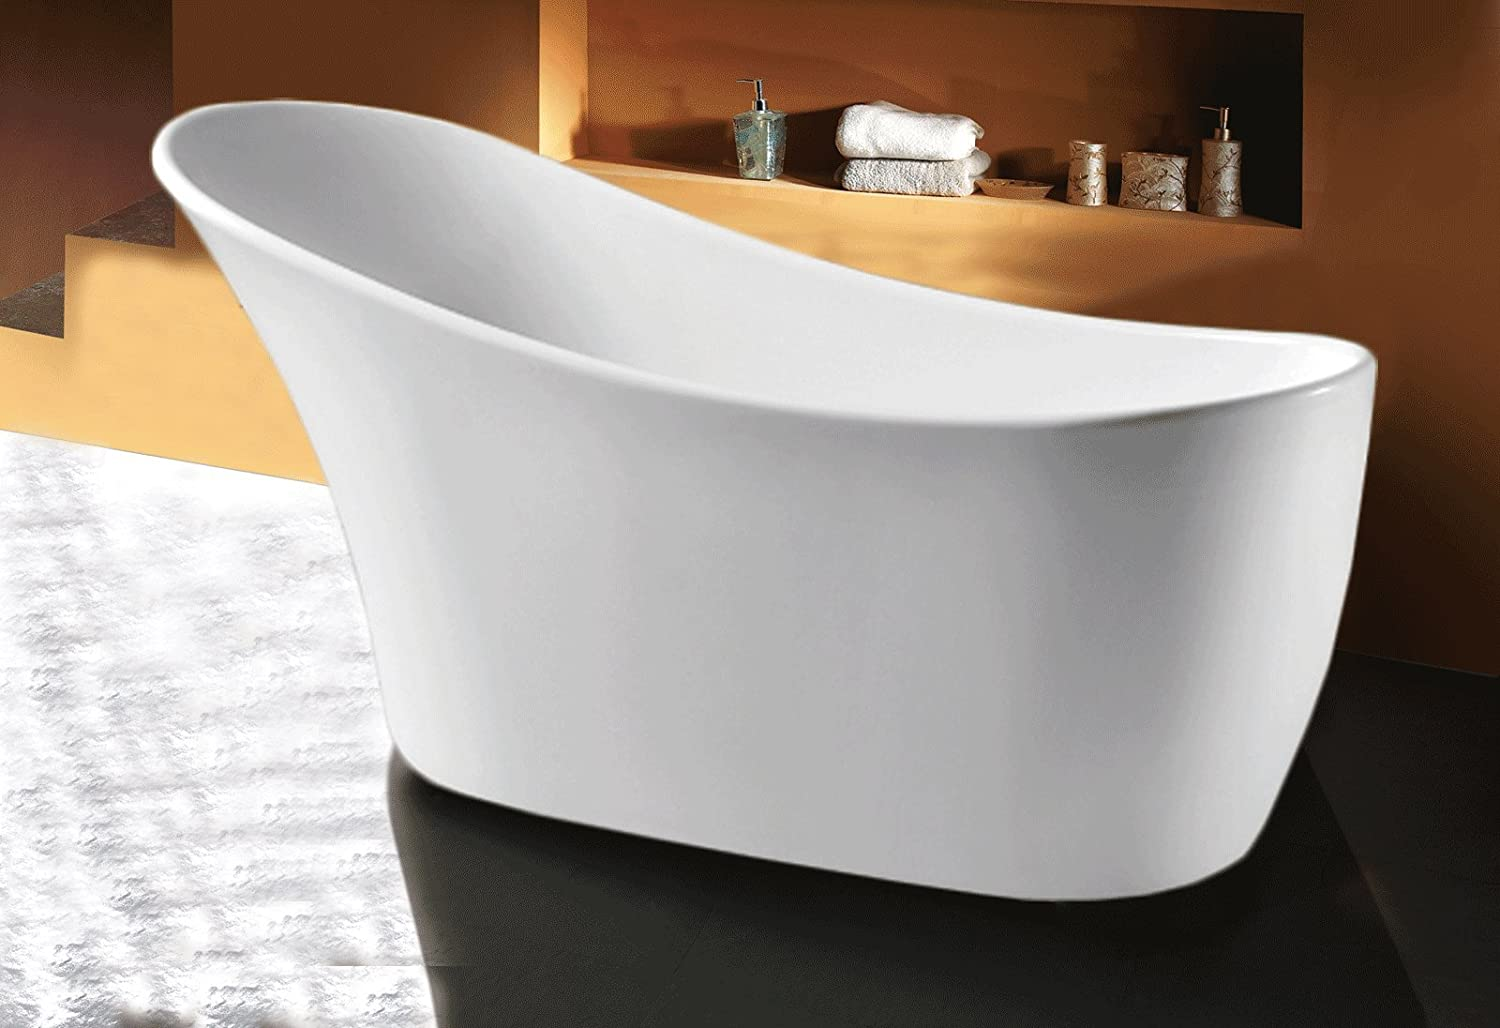 Top 10 best free standing acrylic bathtubs 2016 2017 on for Free standing soaking tub